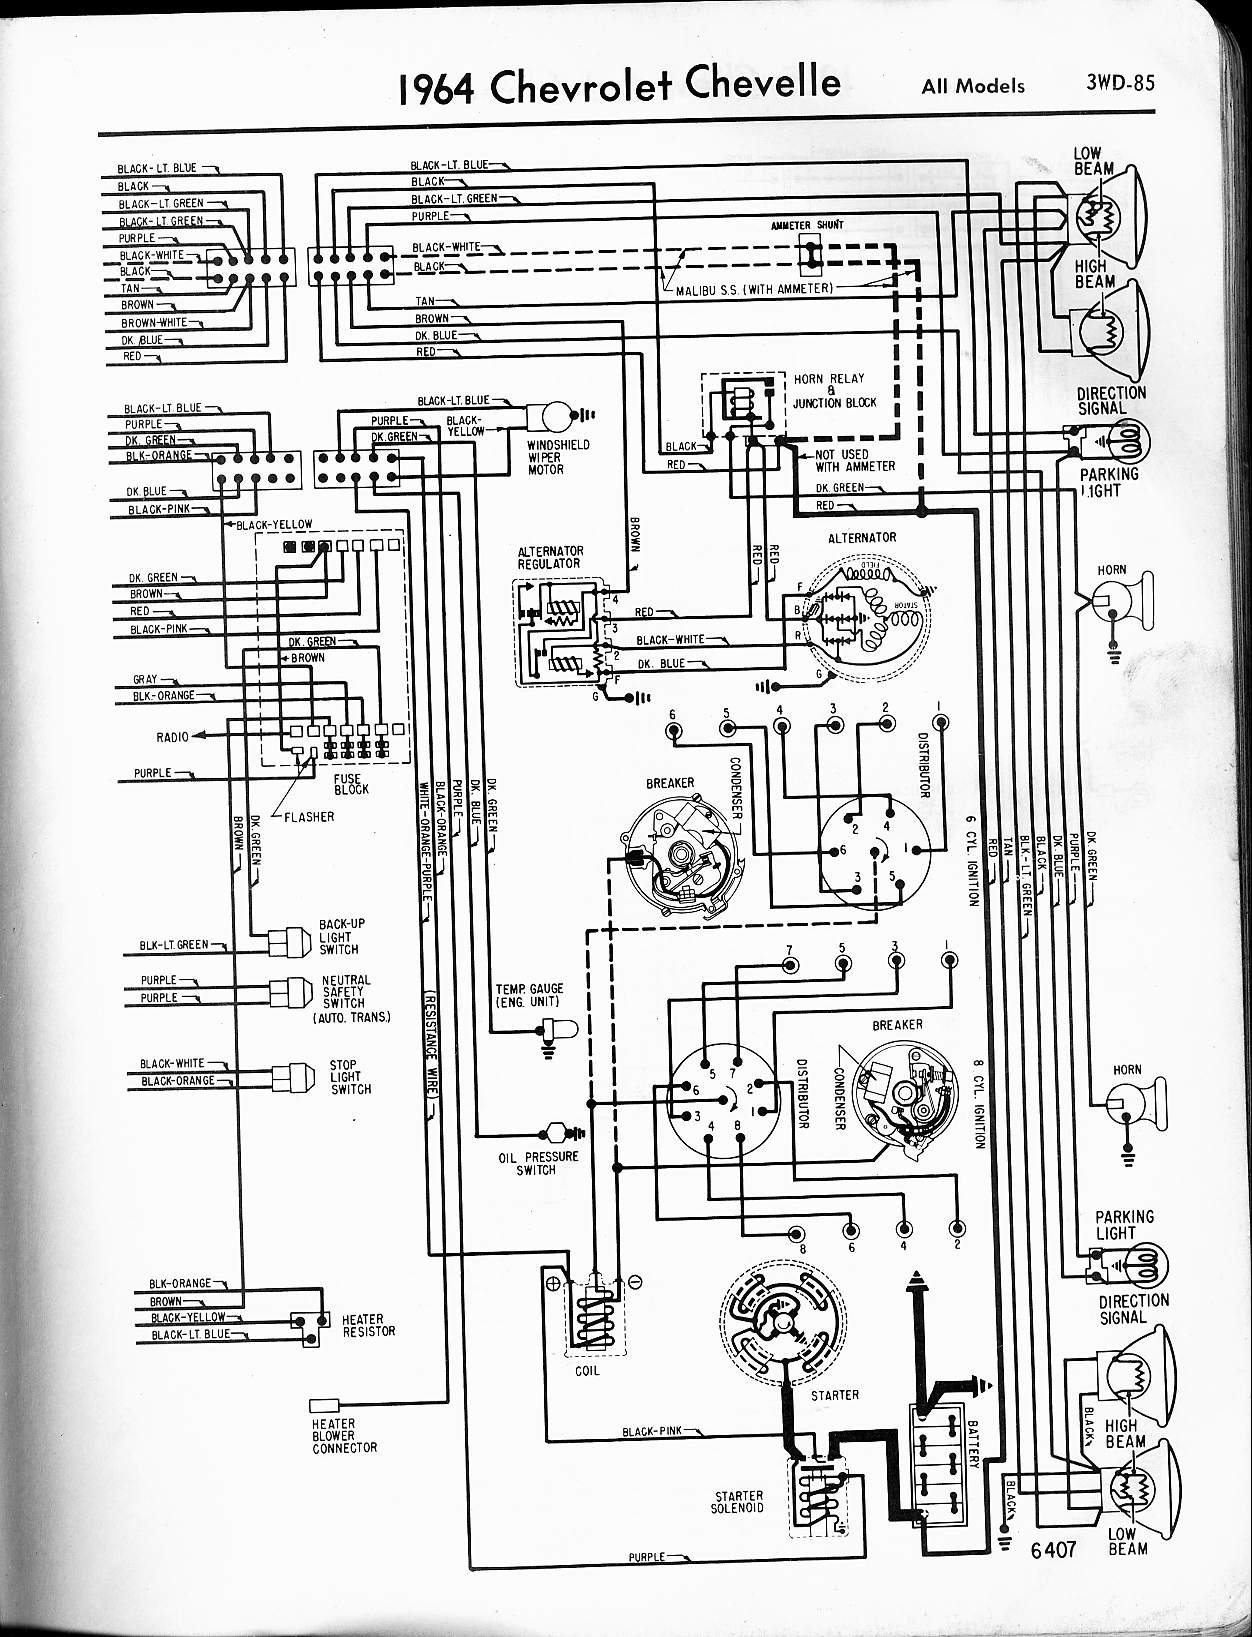 1967 chevelle blinker tach wiring diagram schematics wiring diagrams u2022  rh parntesis co 1971 Chevelle Wiring Diagram 1971 Chevelle Wiring Diagram